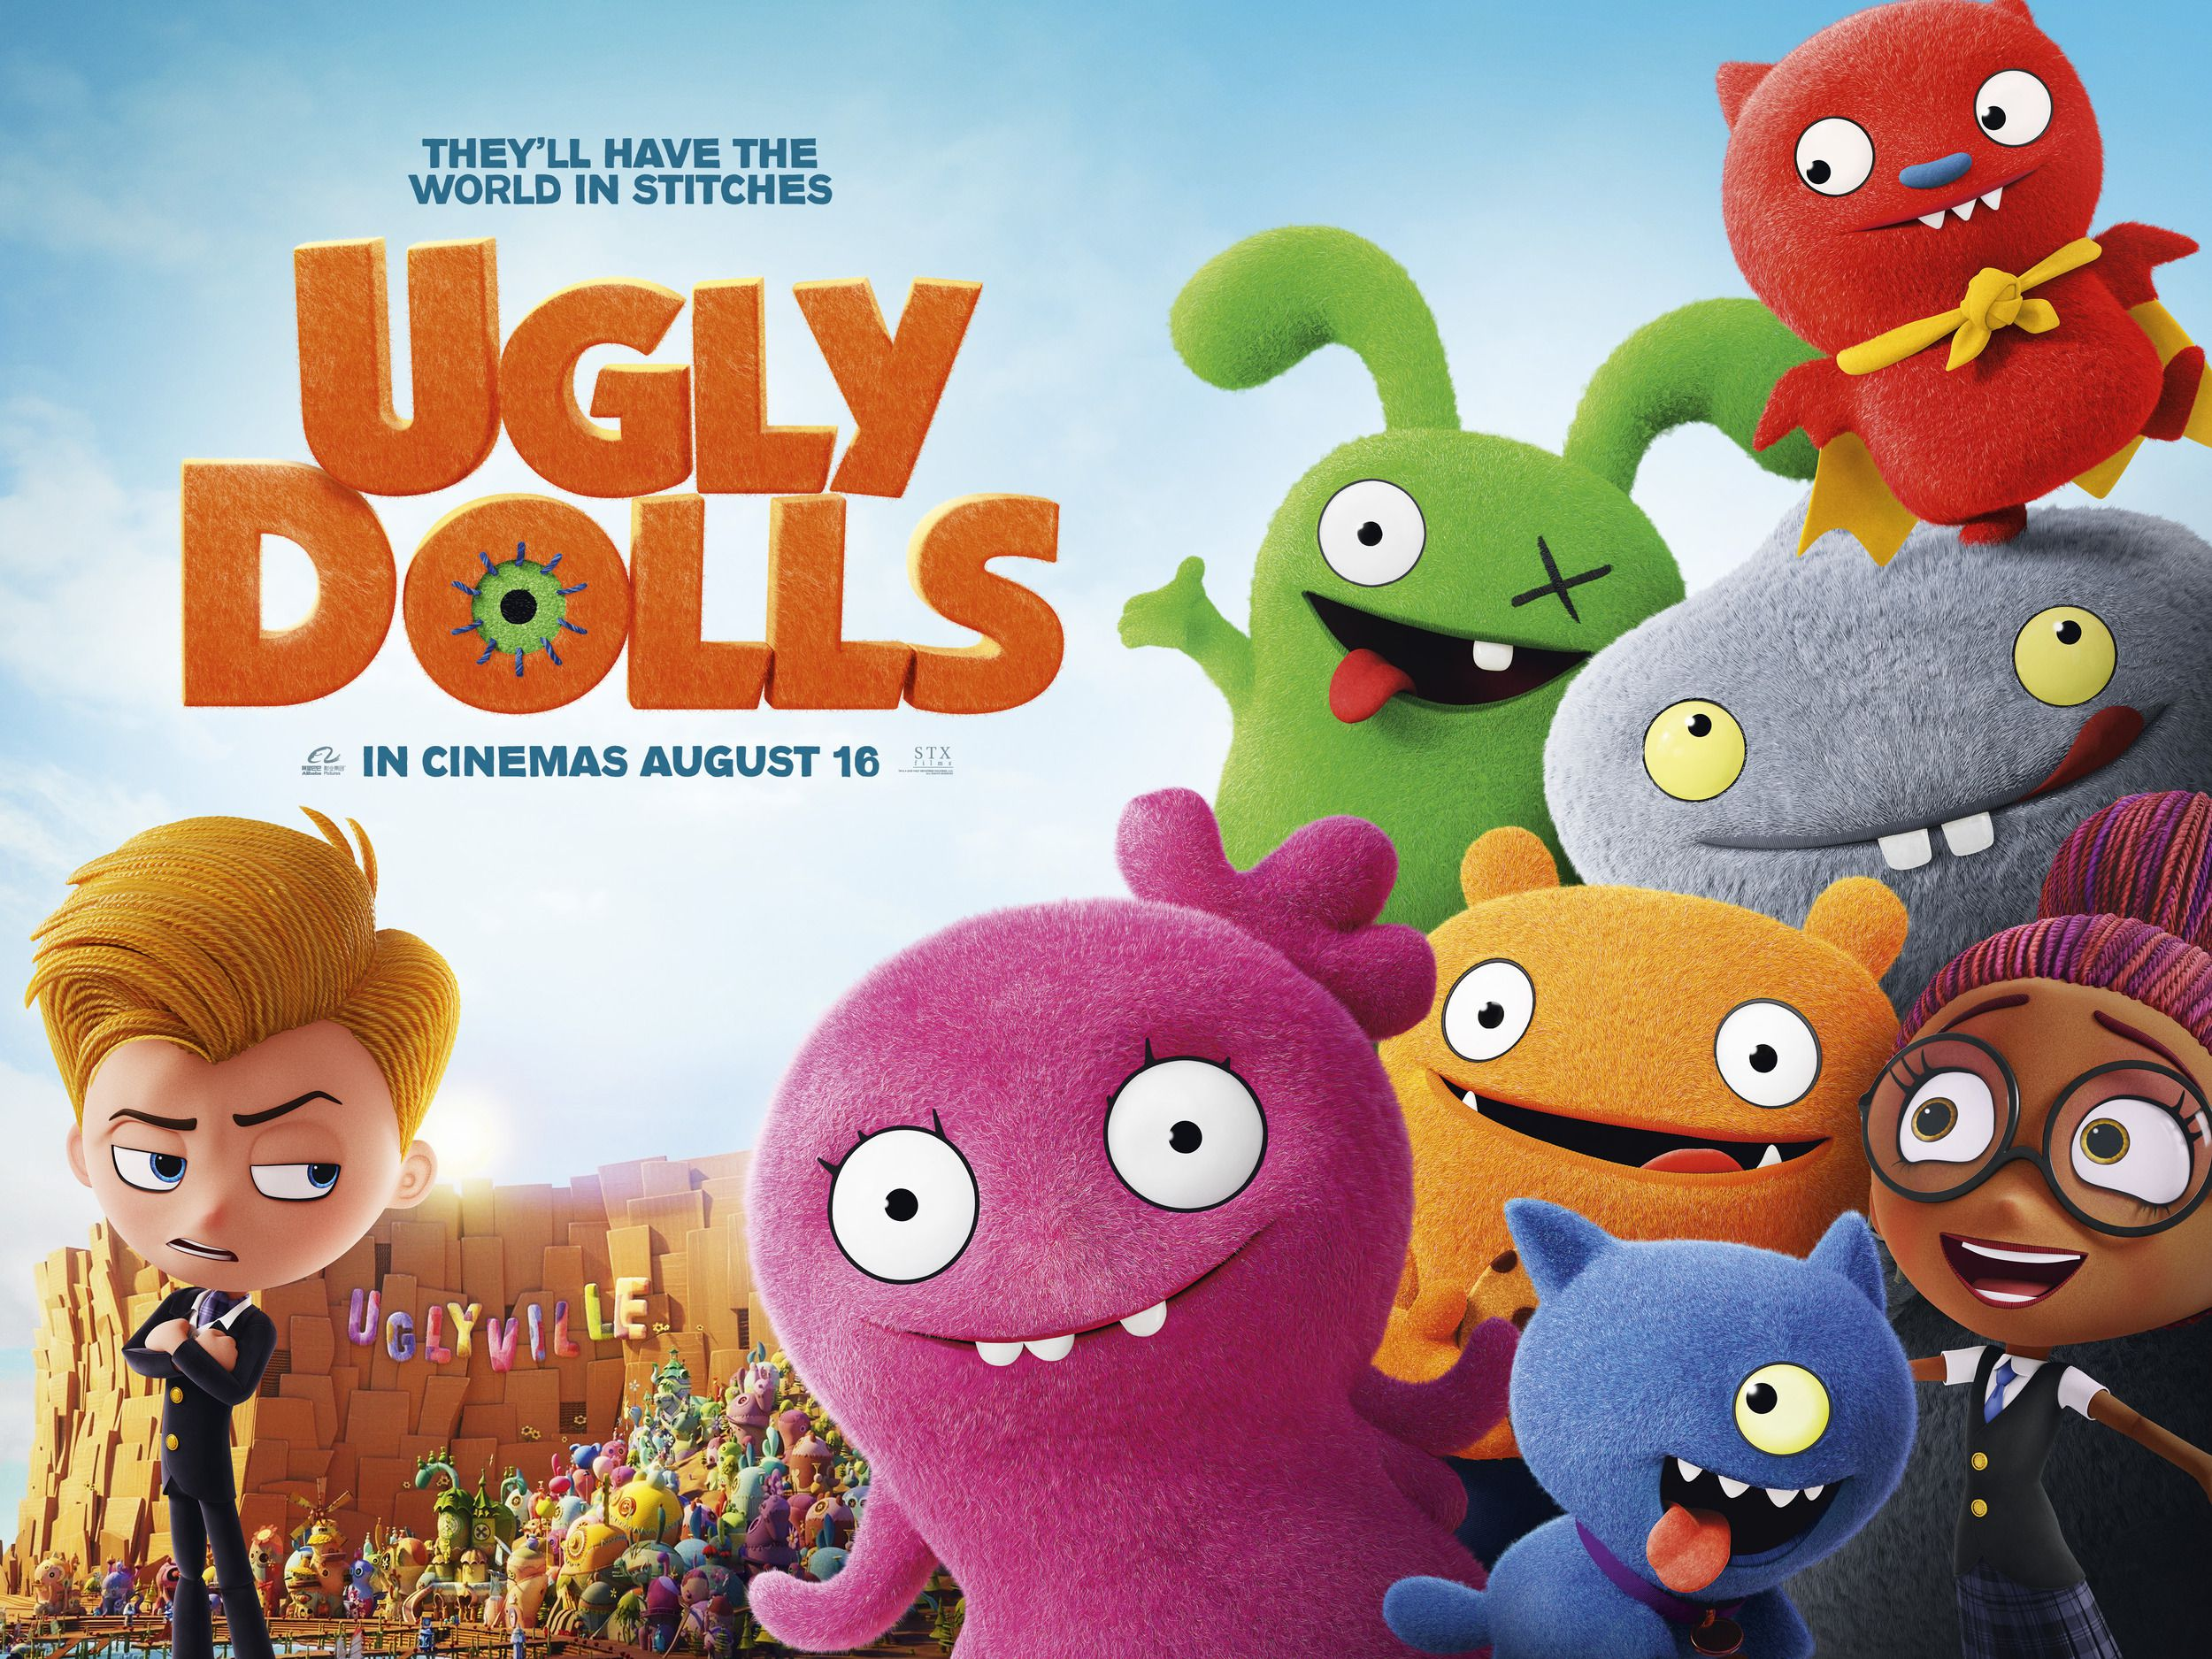 Ugly Dolls 2019 They'll have the world in stitches - voices Kelly Clarkson, Nick Jonas, Janelle Monae - poster